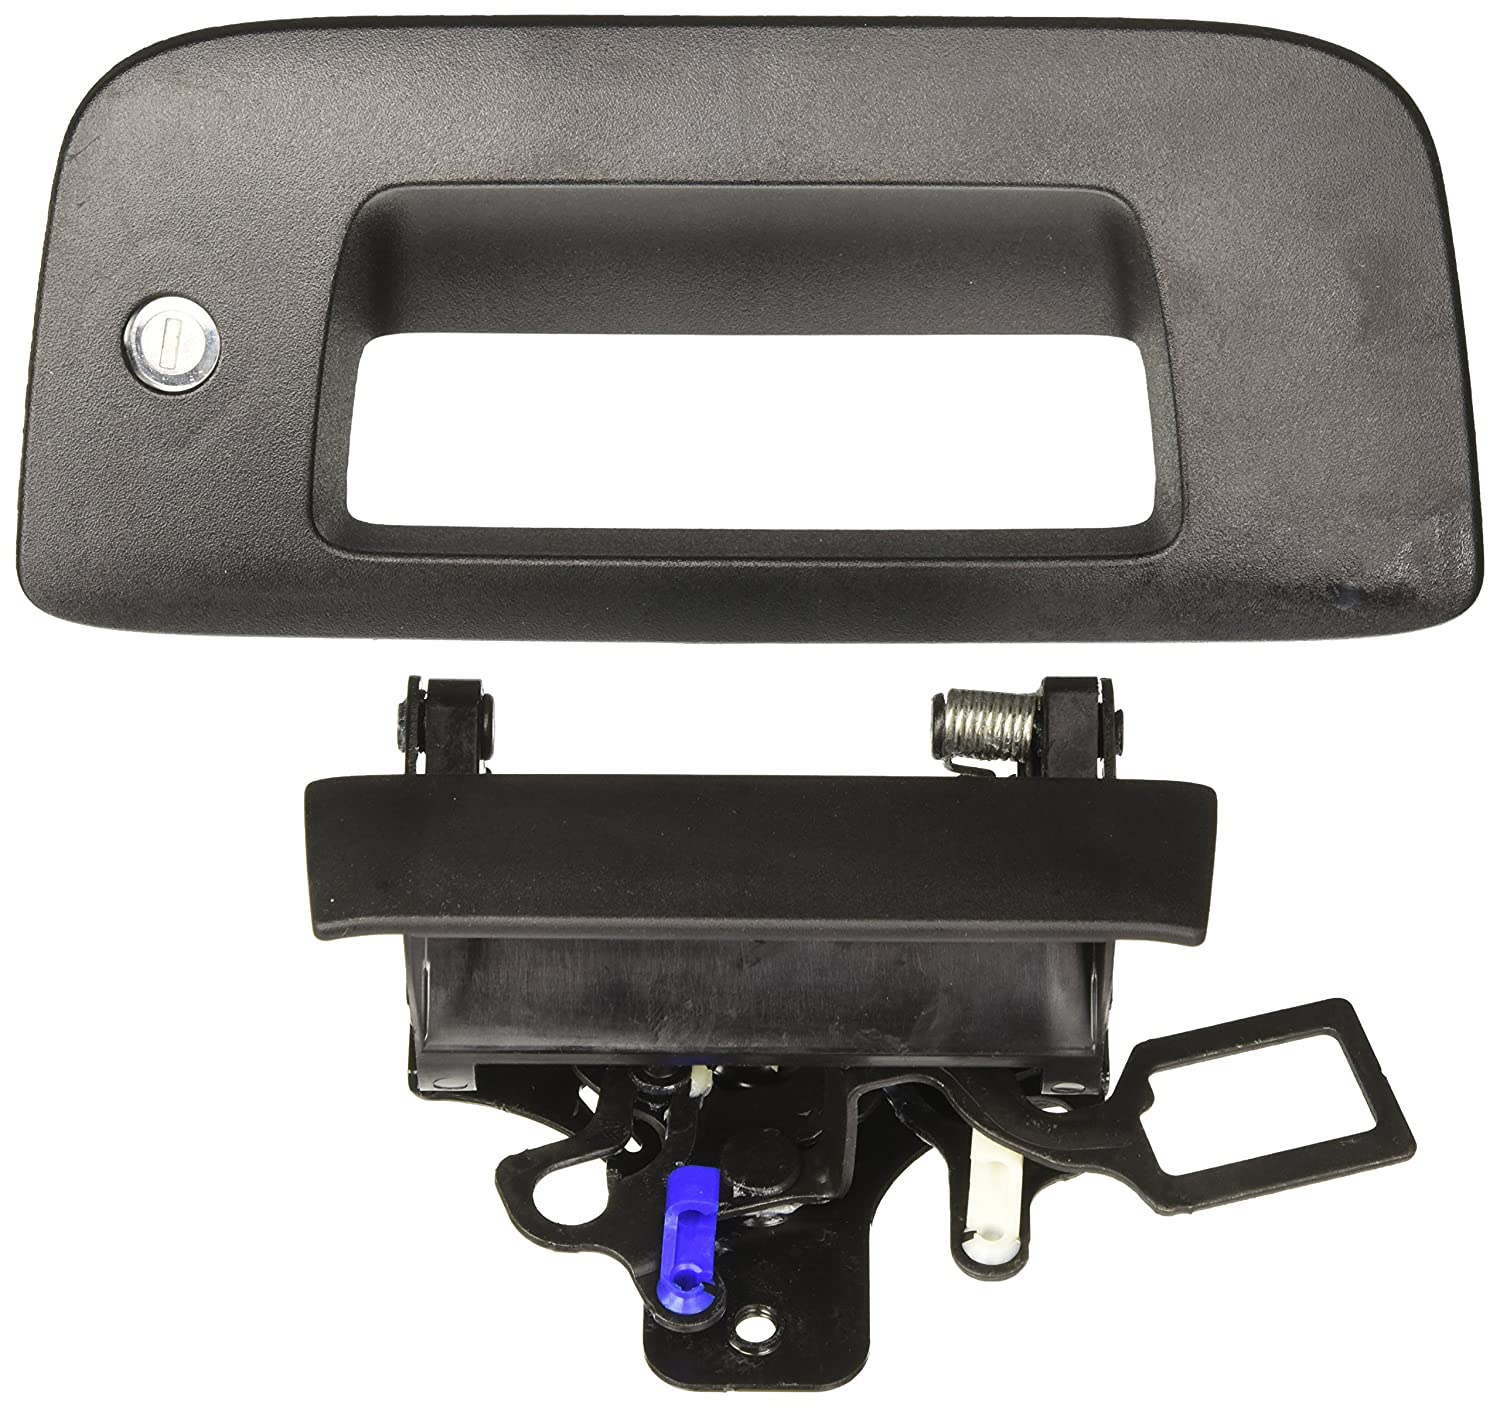 2007-2013 Chevrolet Silverado or GMC Sierra Black Bezel and Handle with Codeable Lock Package by GM 22755305 by General Motors